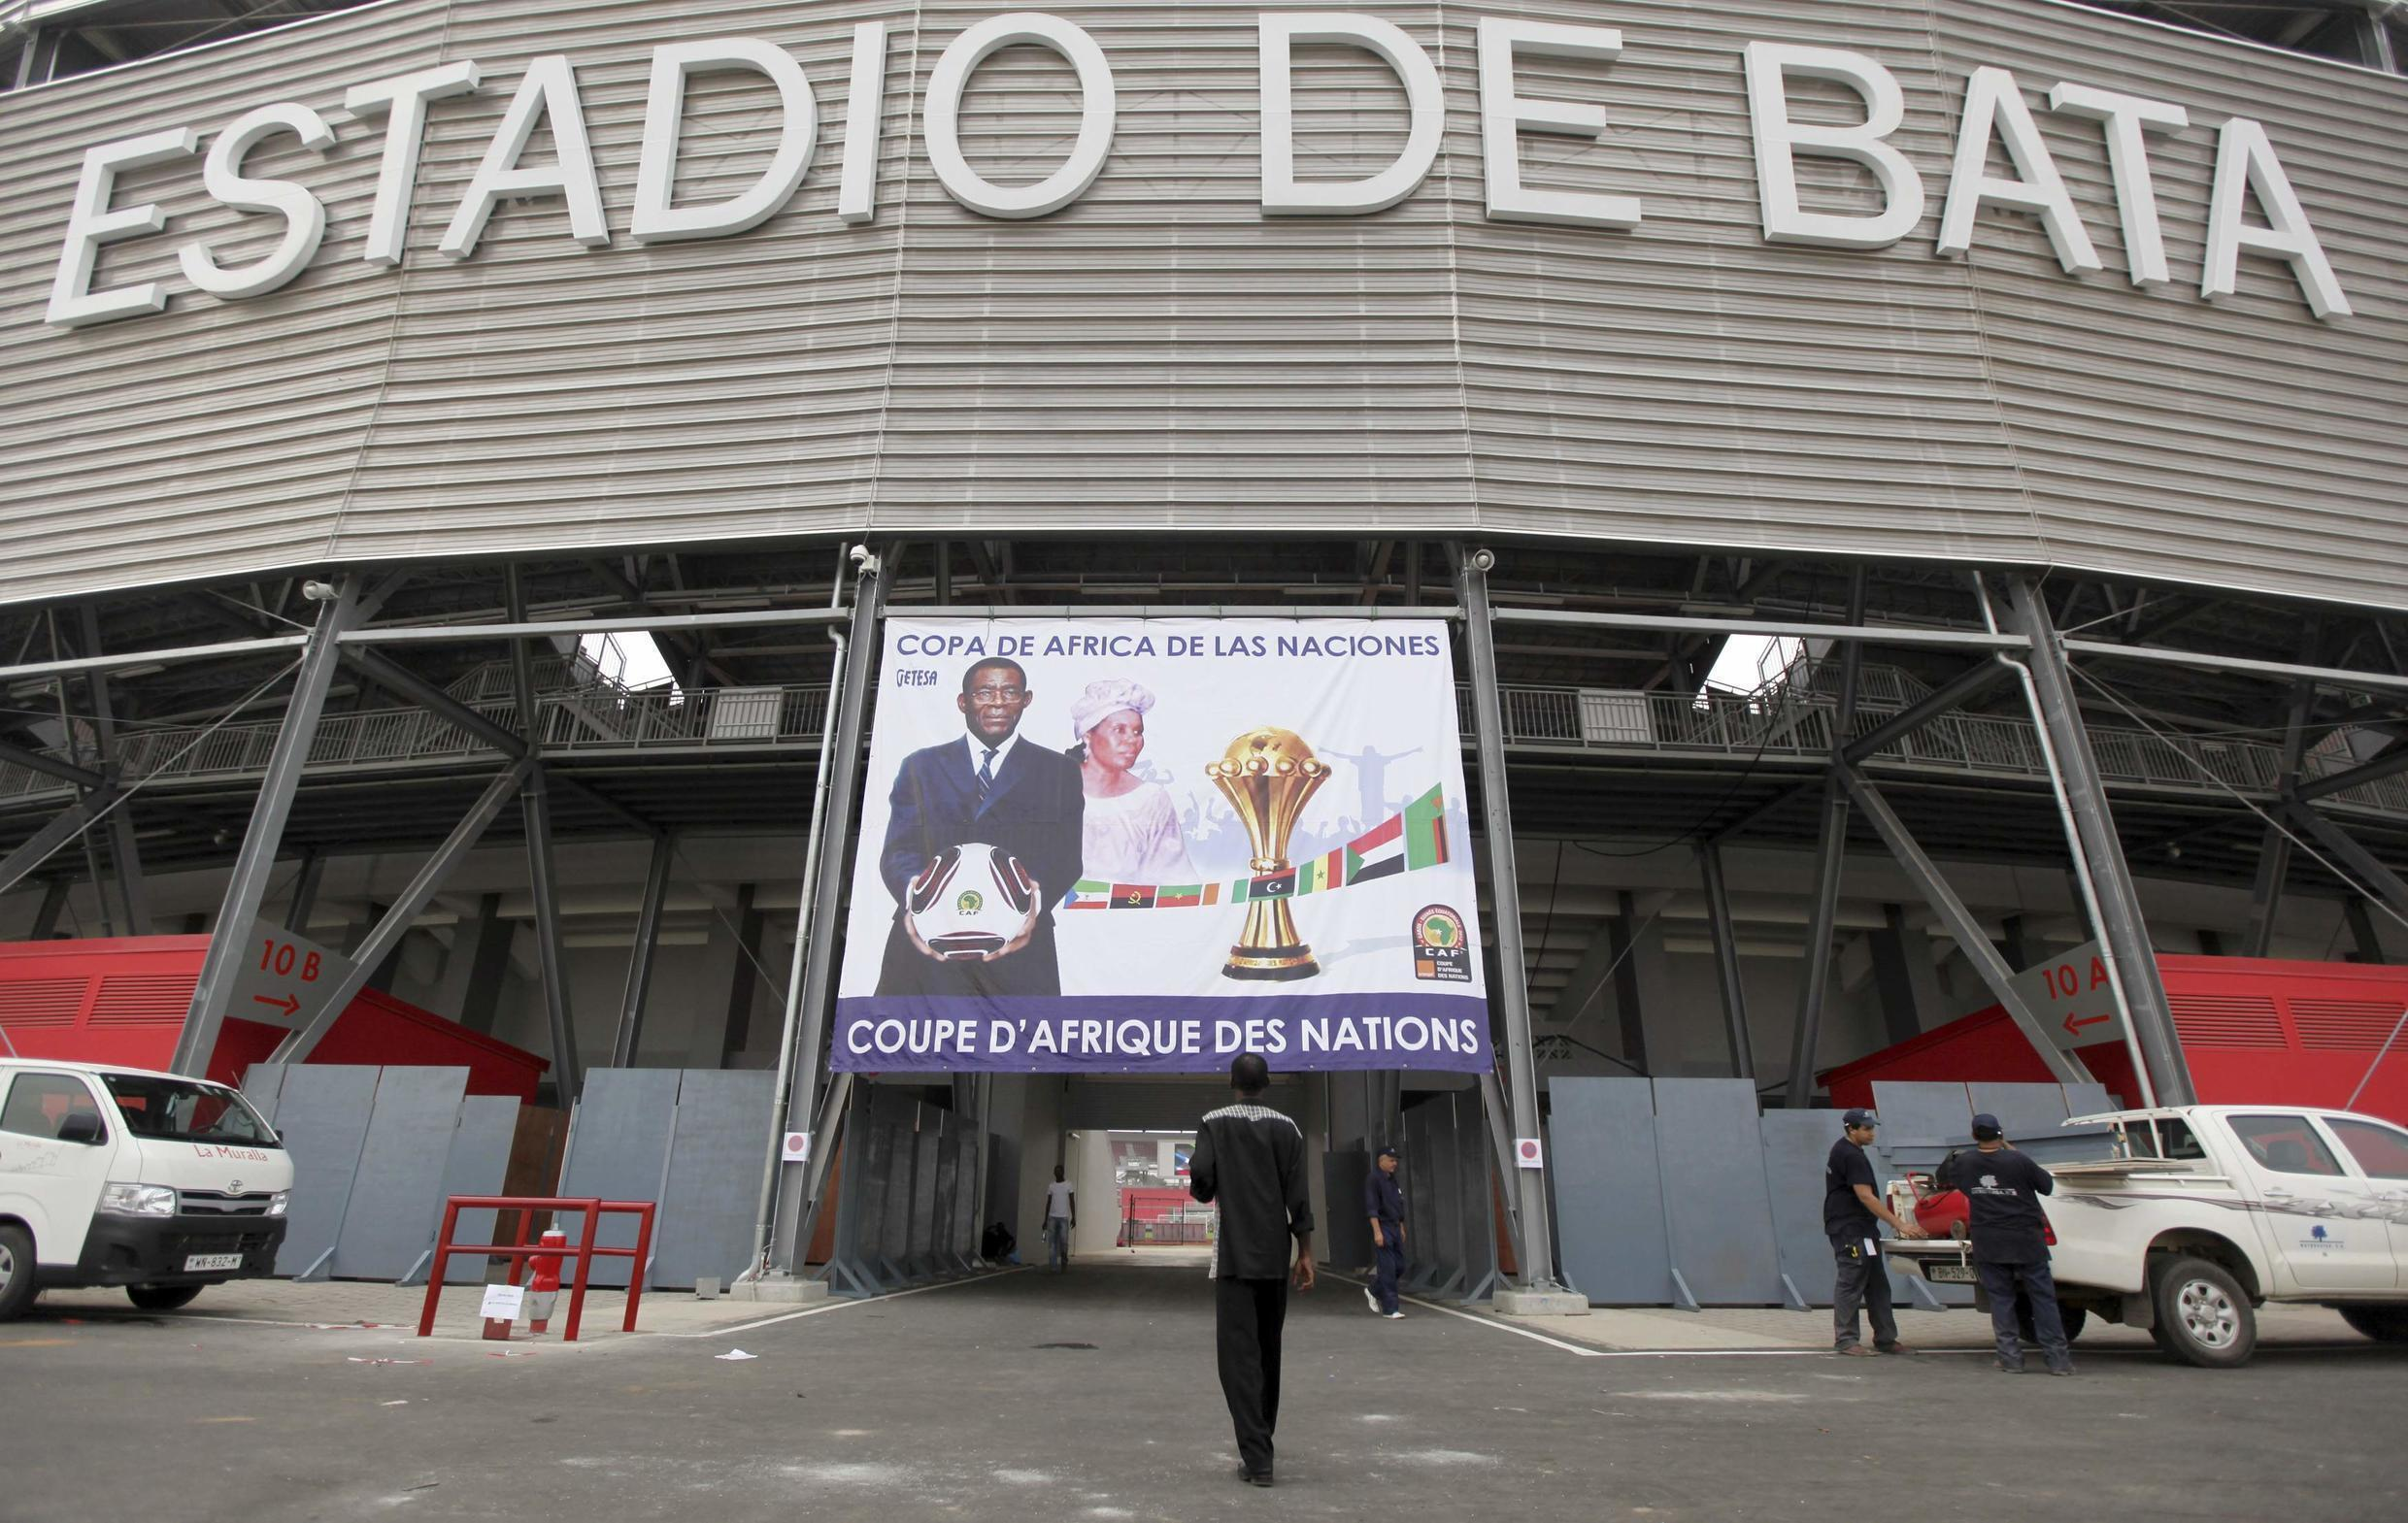 The Estadio de Bata (Bata Stadium) will host the opening ceremony for the African Nations Cup on 21 January, 2012